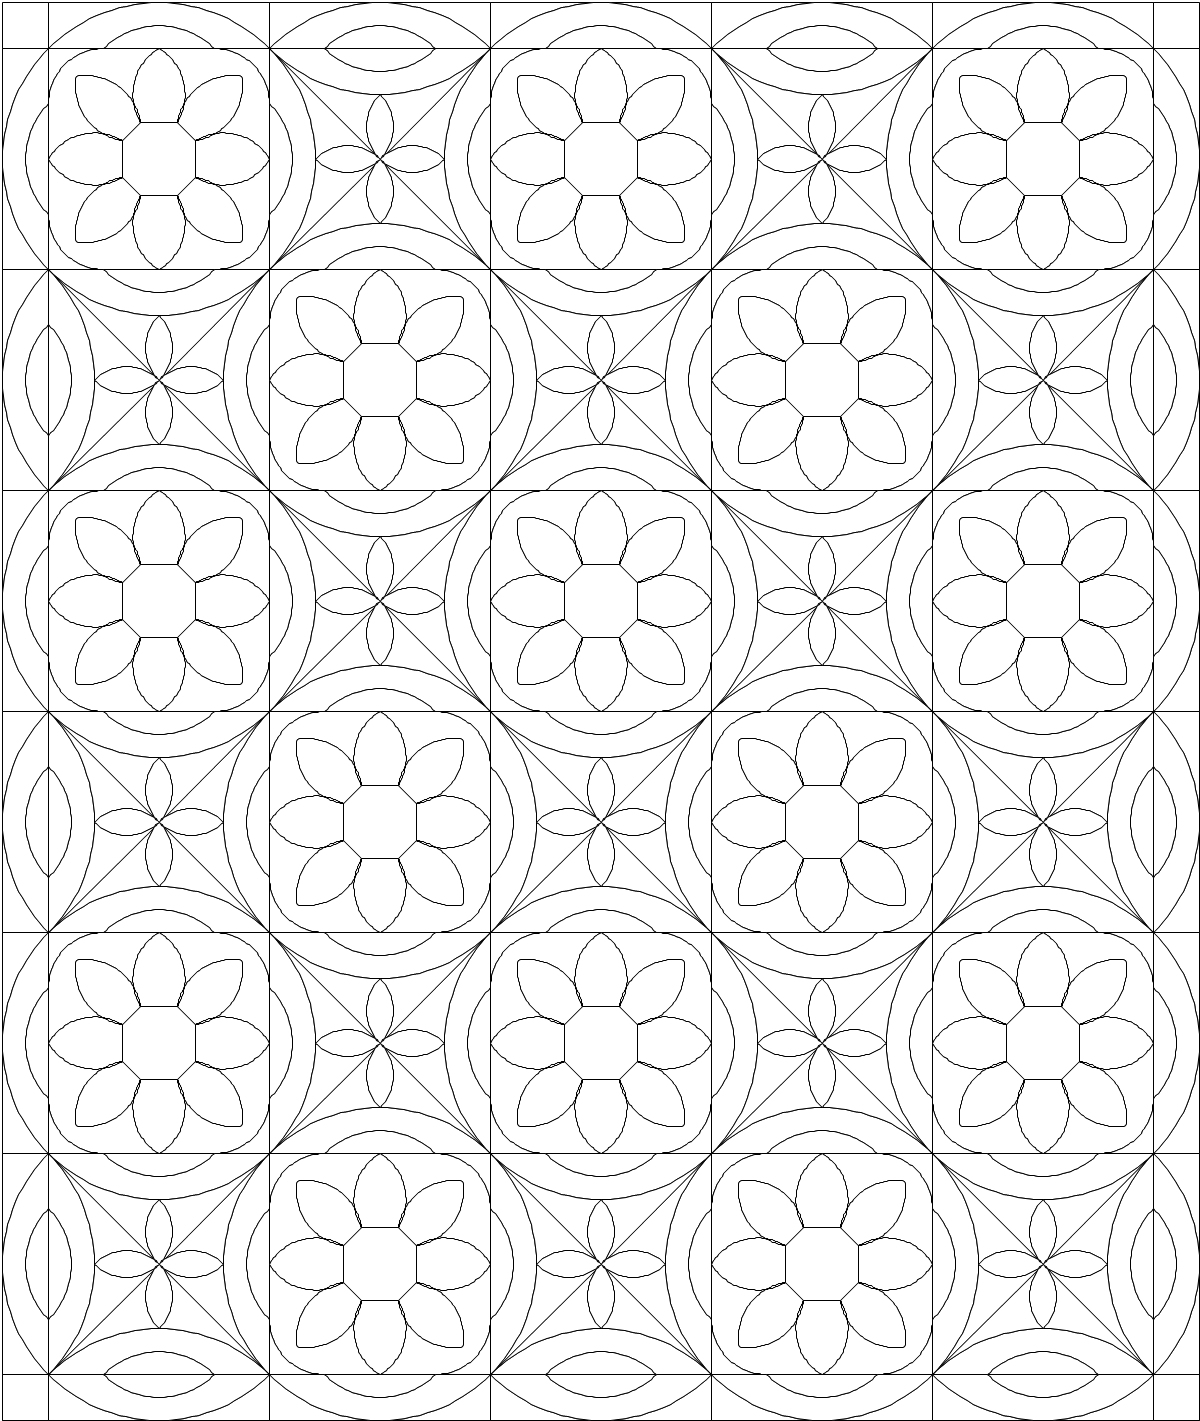 coloring page quilt traditional patchwork quilt designs dover design coloring quilt coloring page